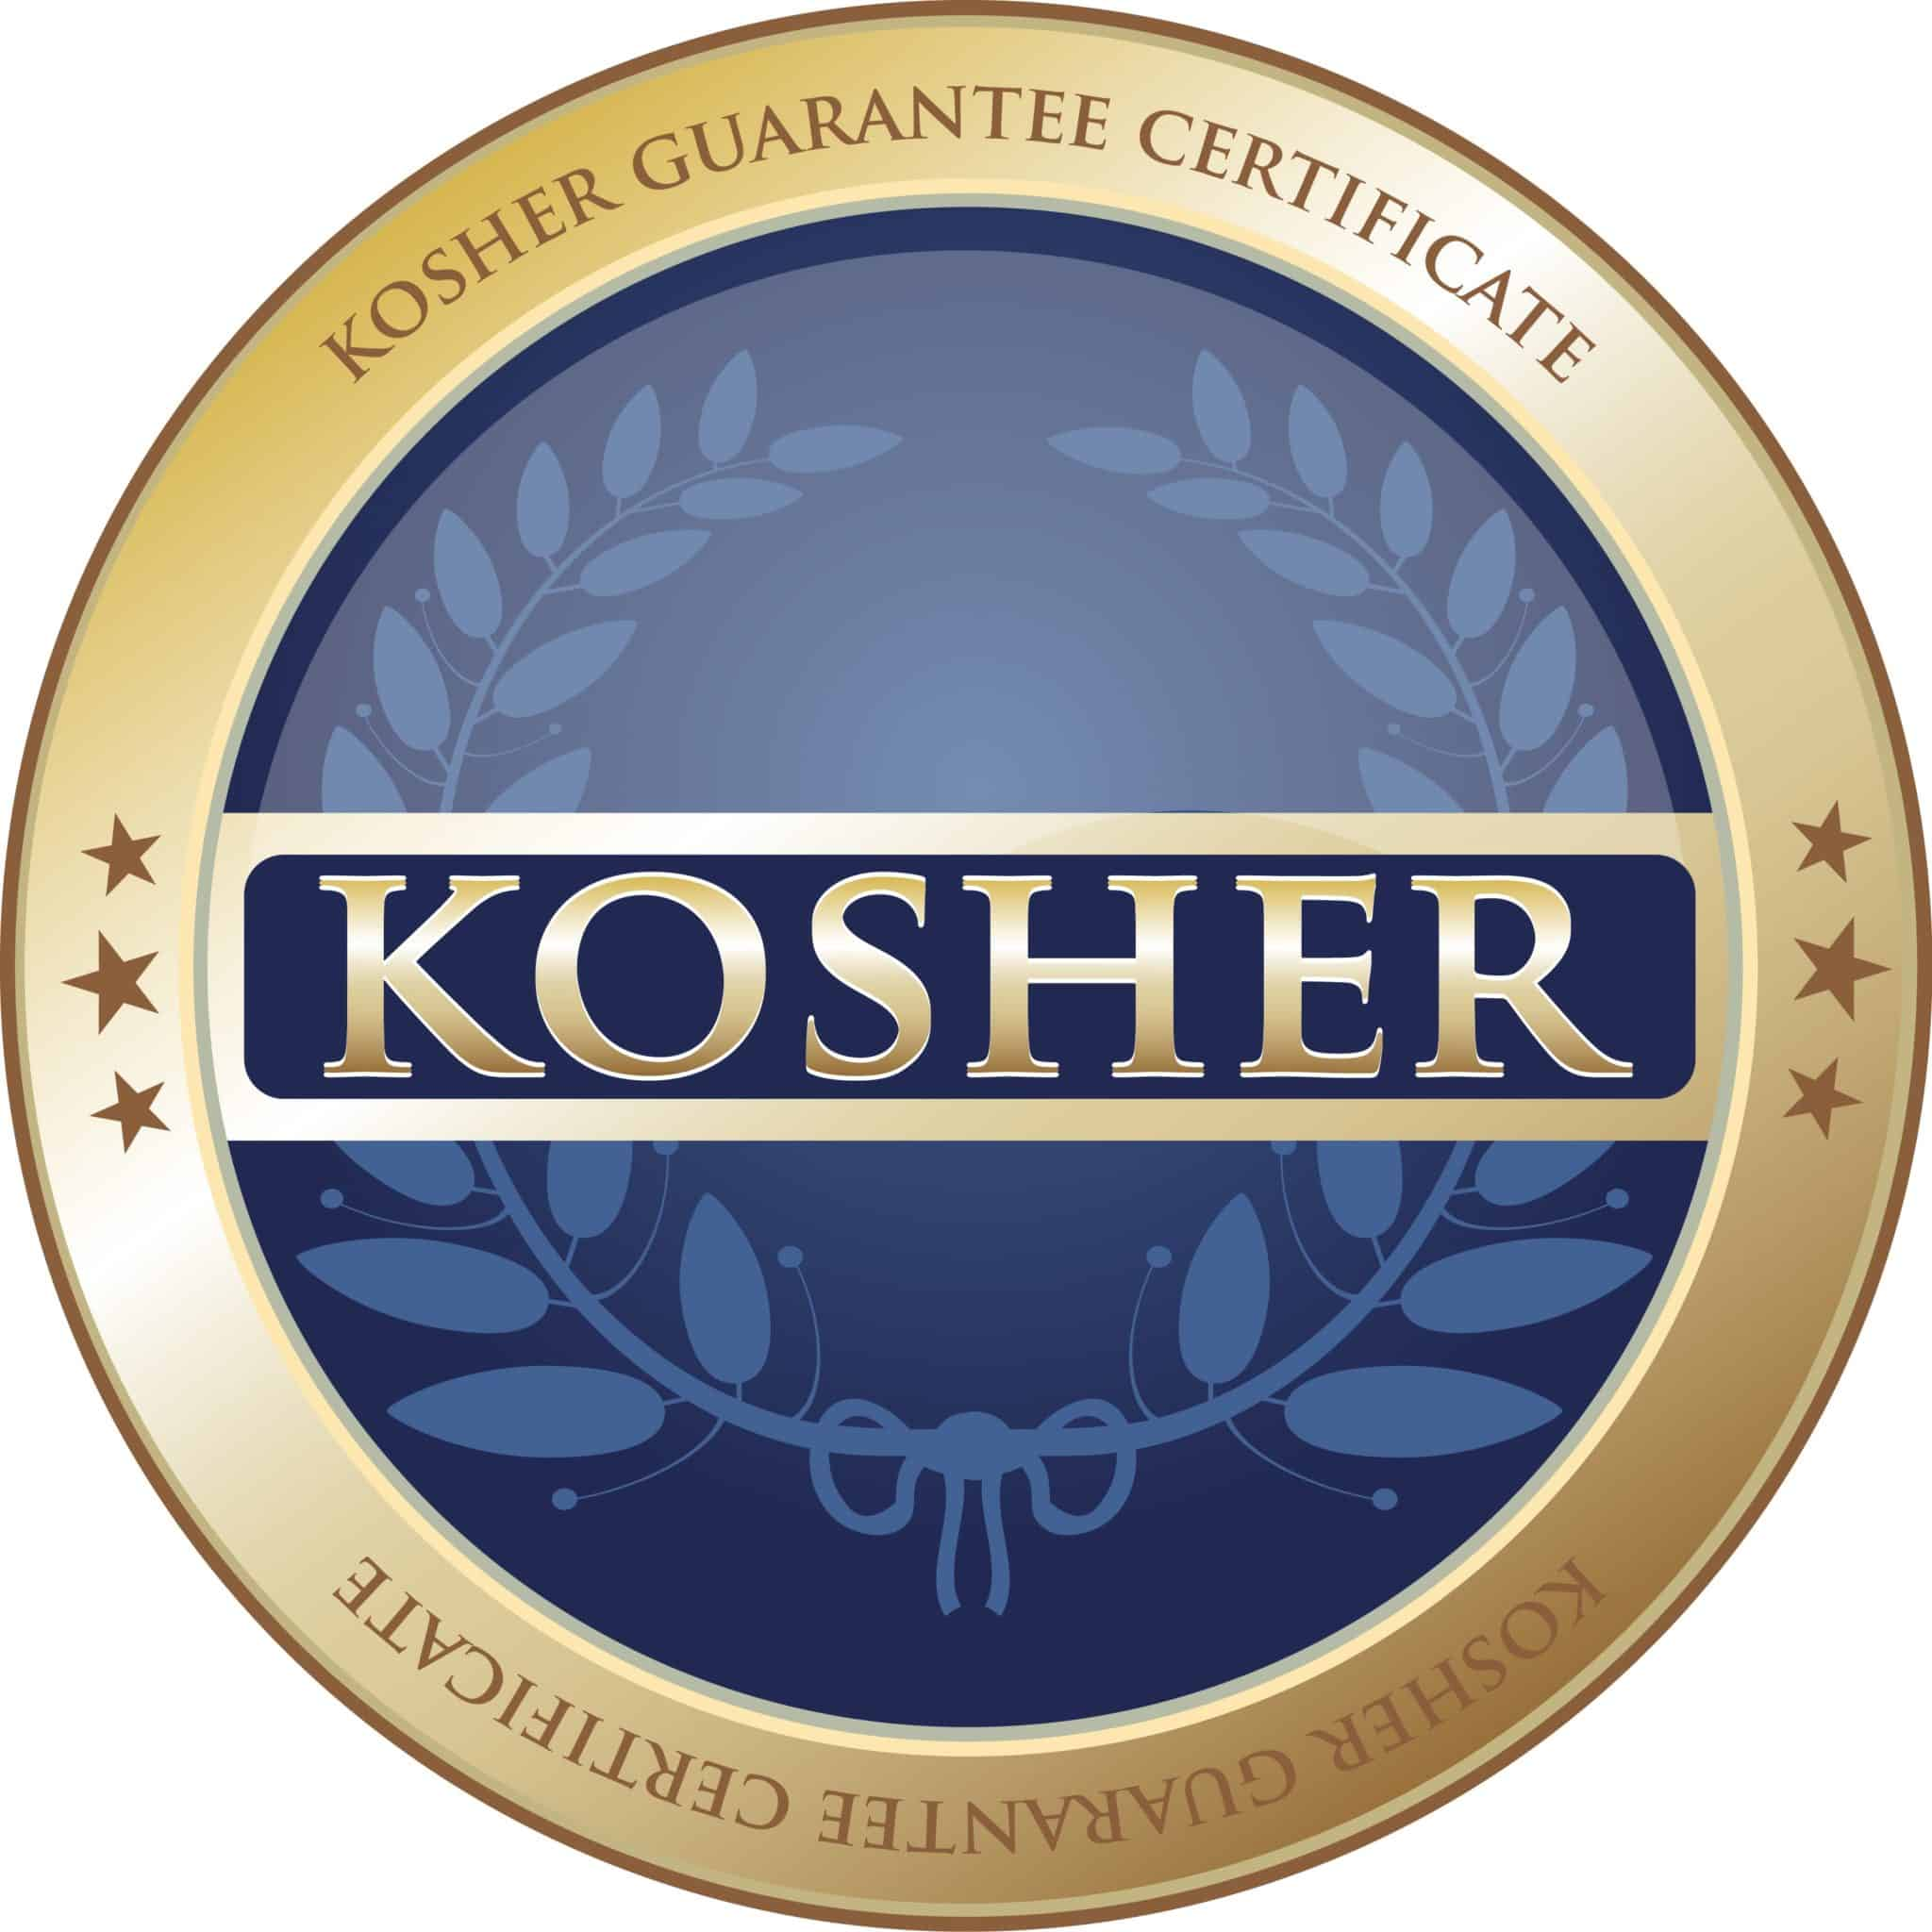 Kosher vitamin manufacturer, kosher certified vitamin manufacturer